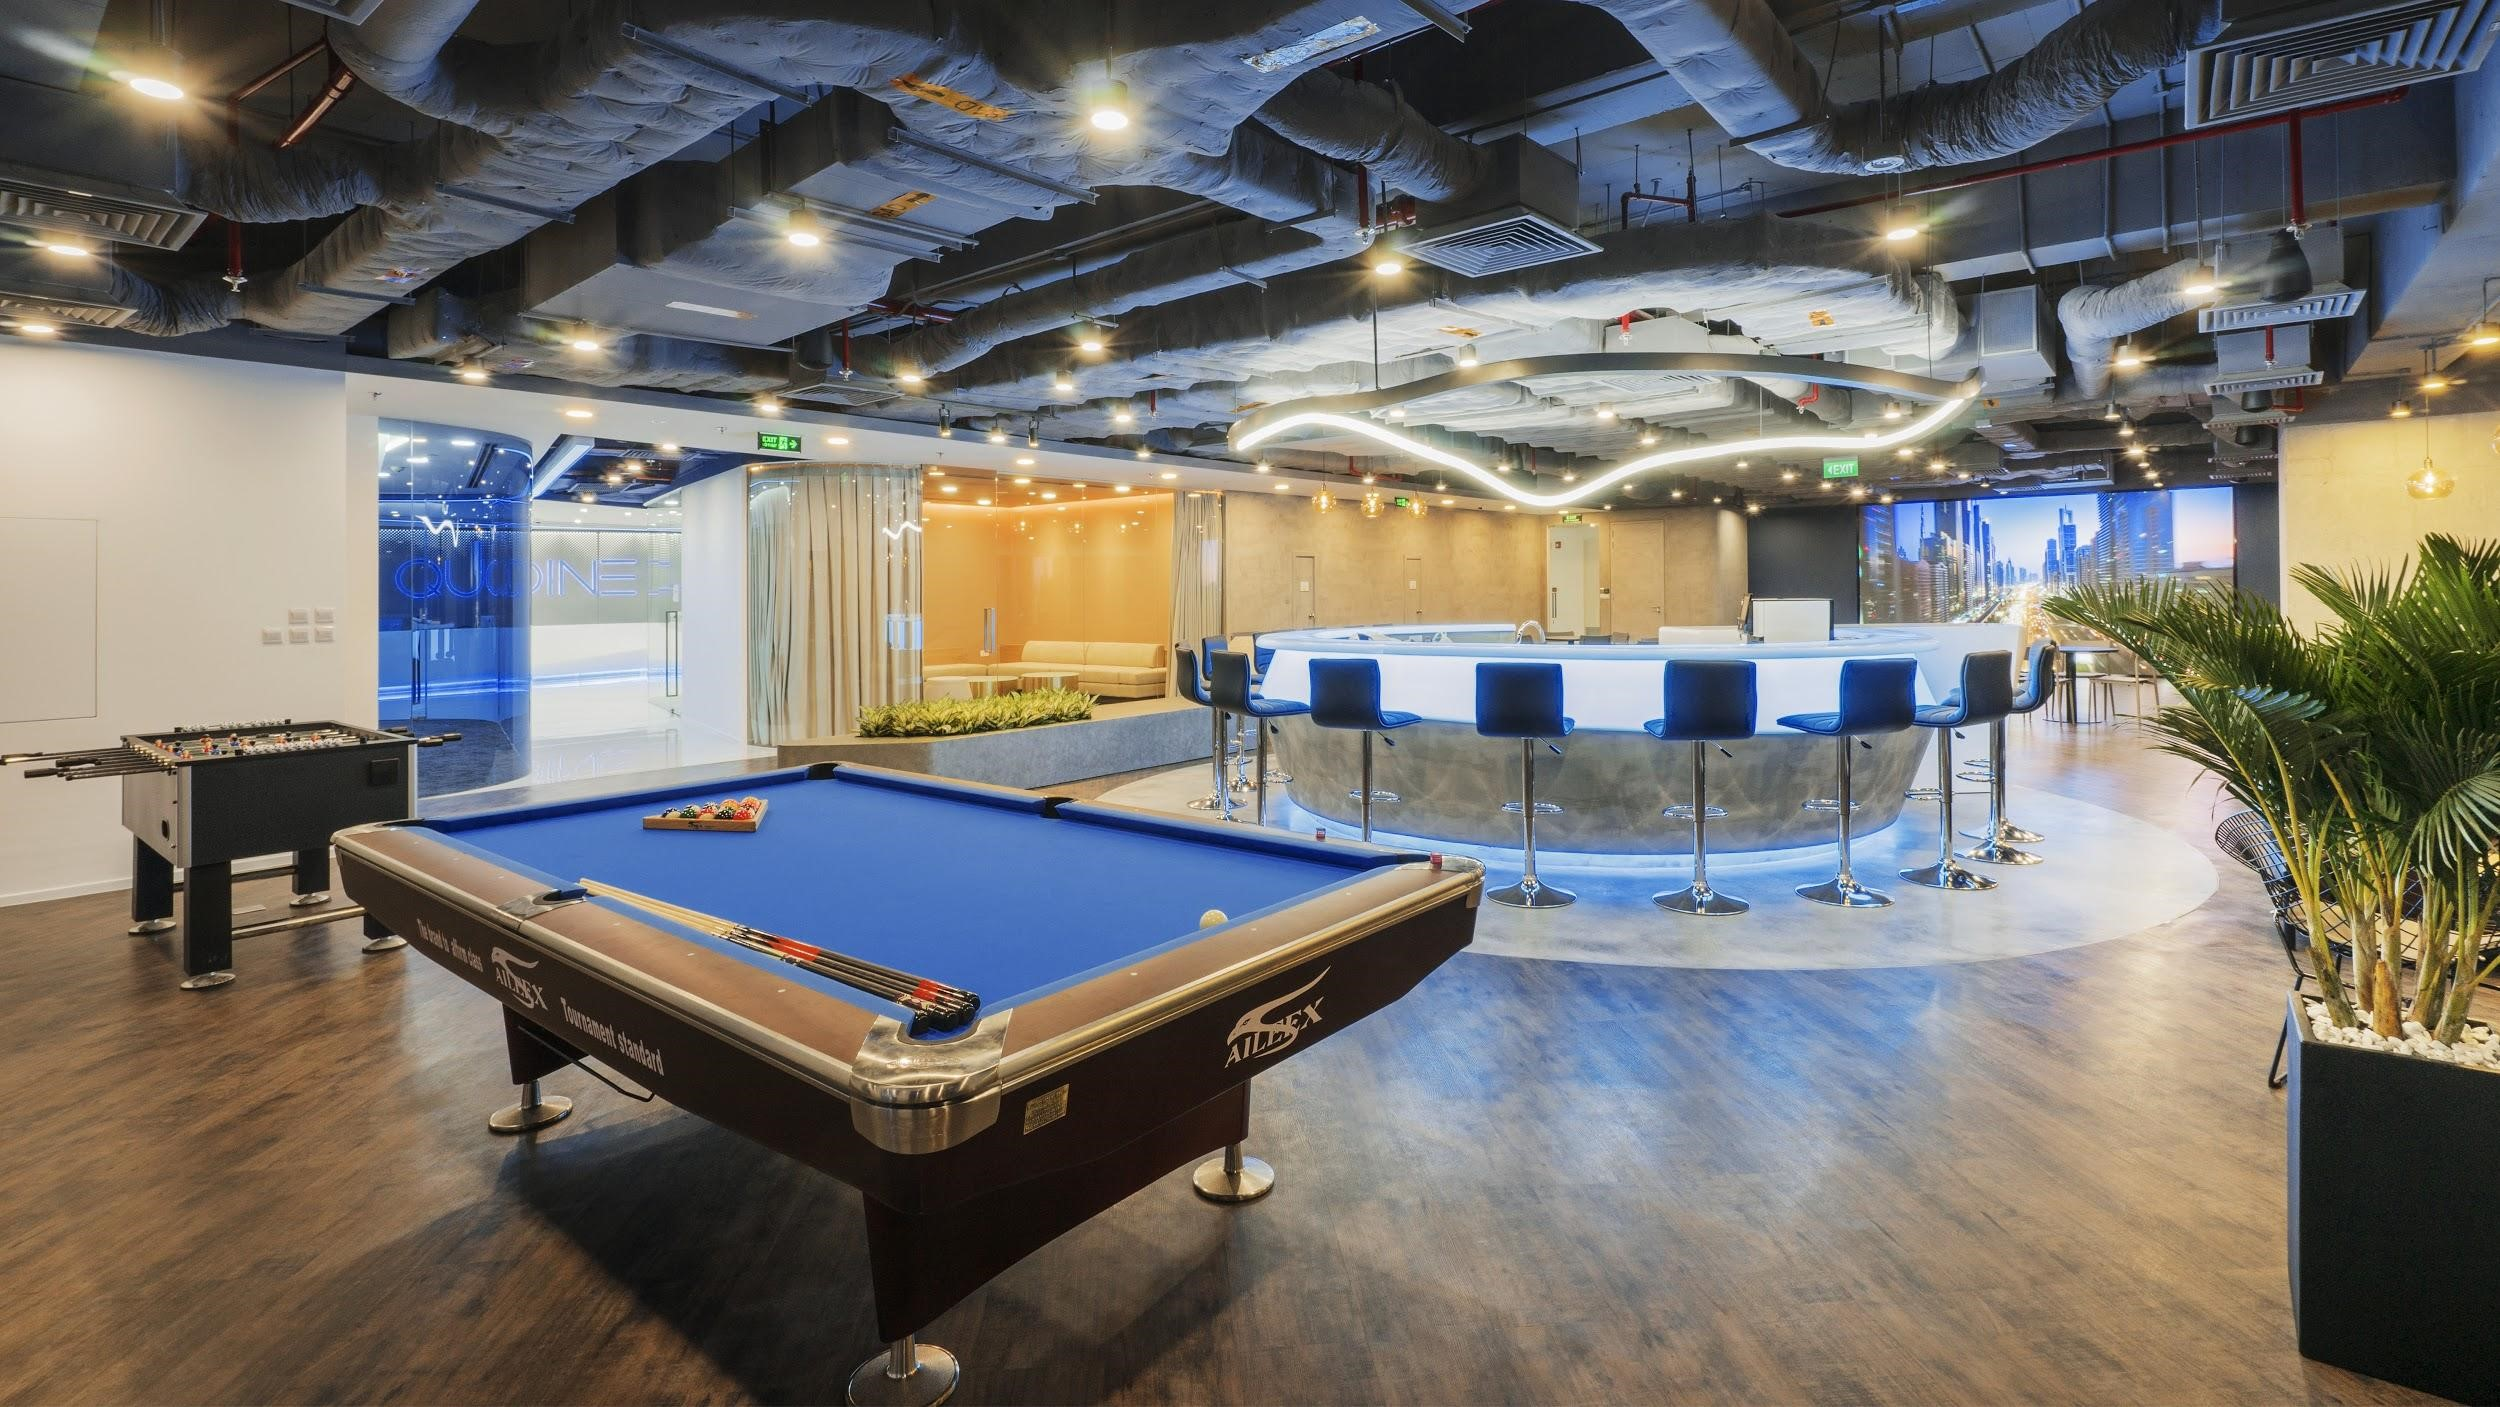 The billiard lounge next to a bar with blue light brings comfort to the employees